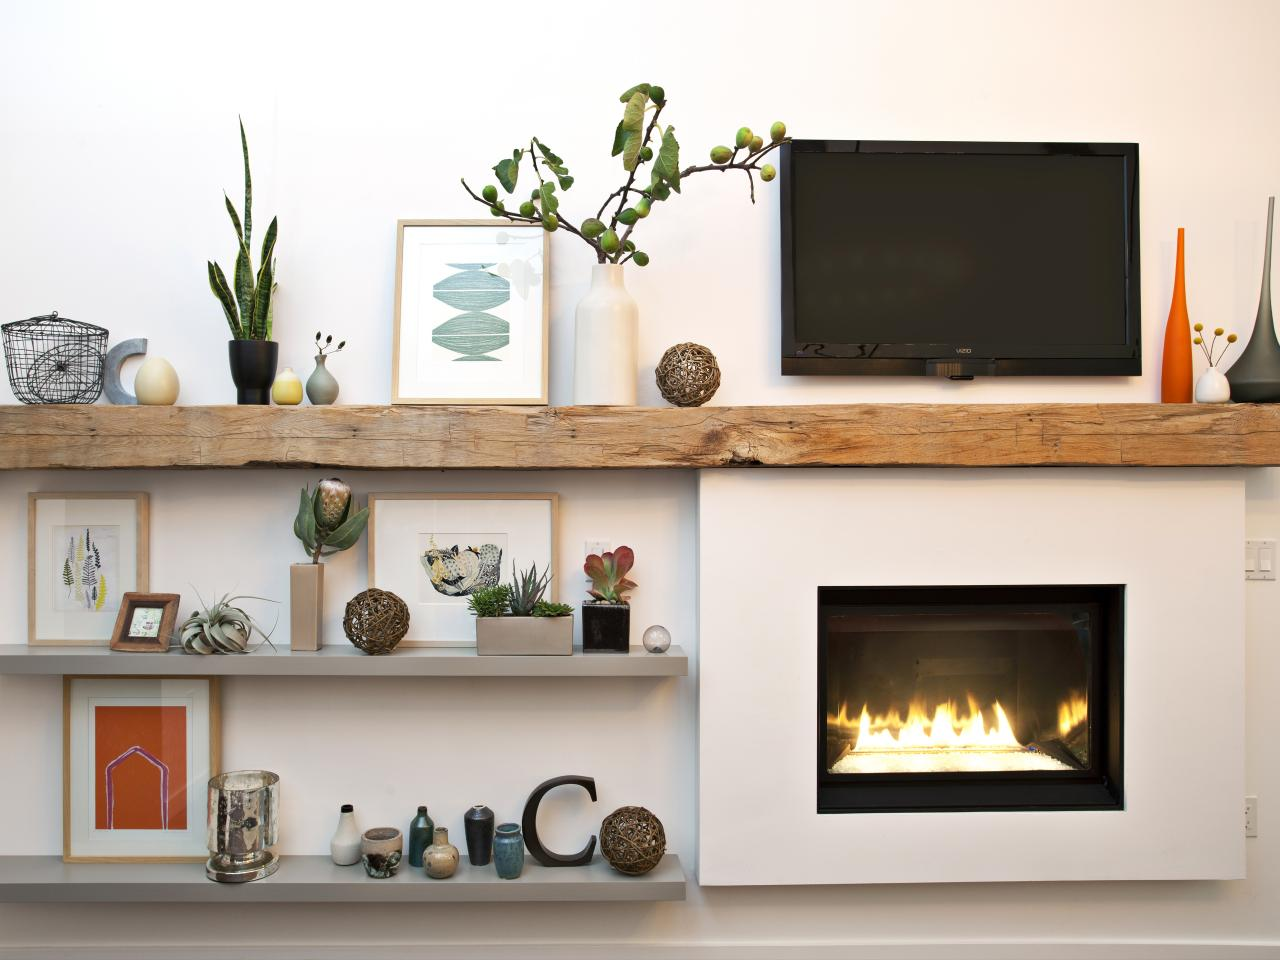 Modern Living Room Fireplace With Rough Hewn Mantel And Shelves